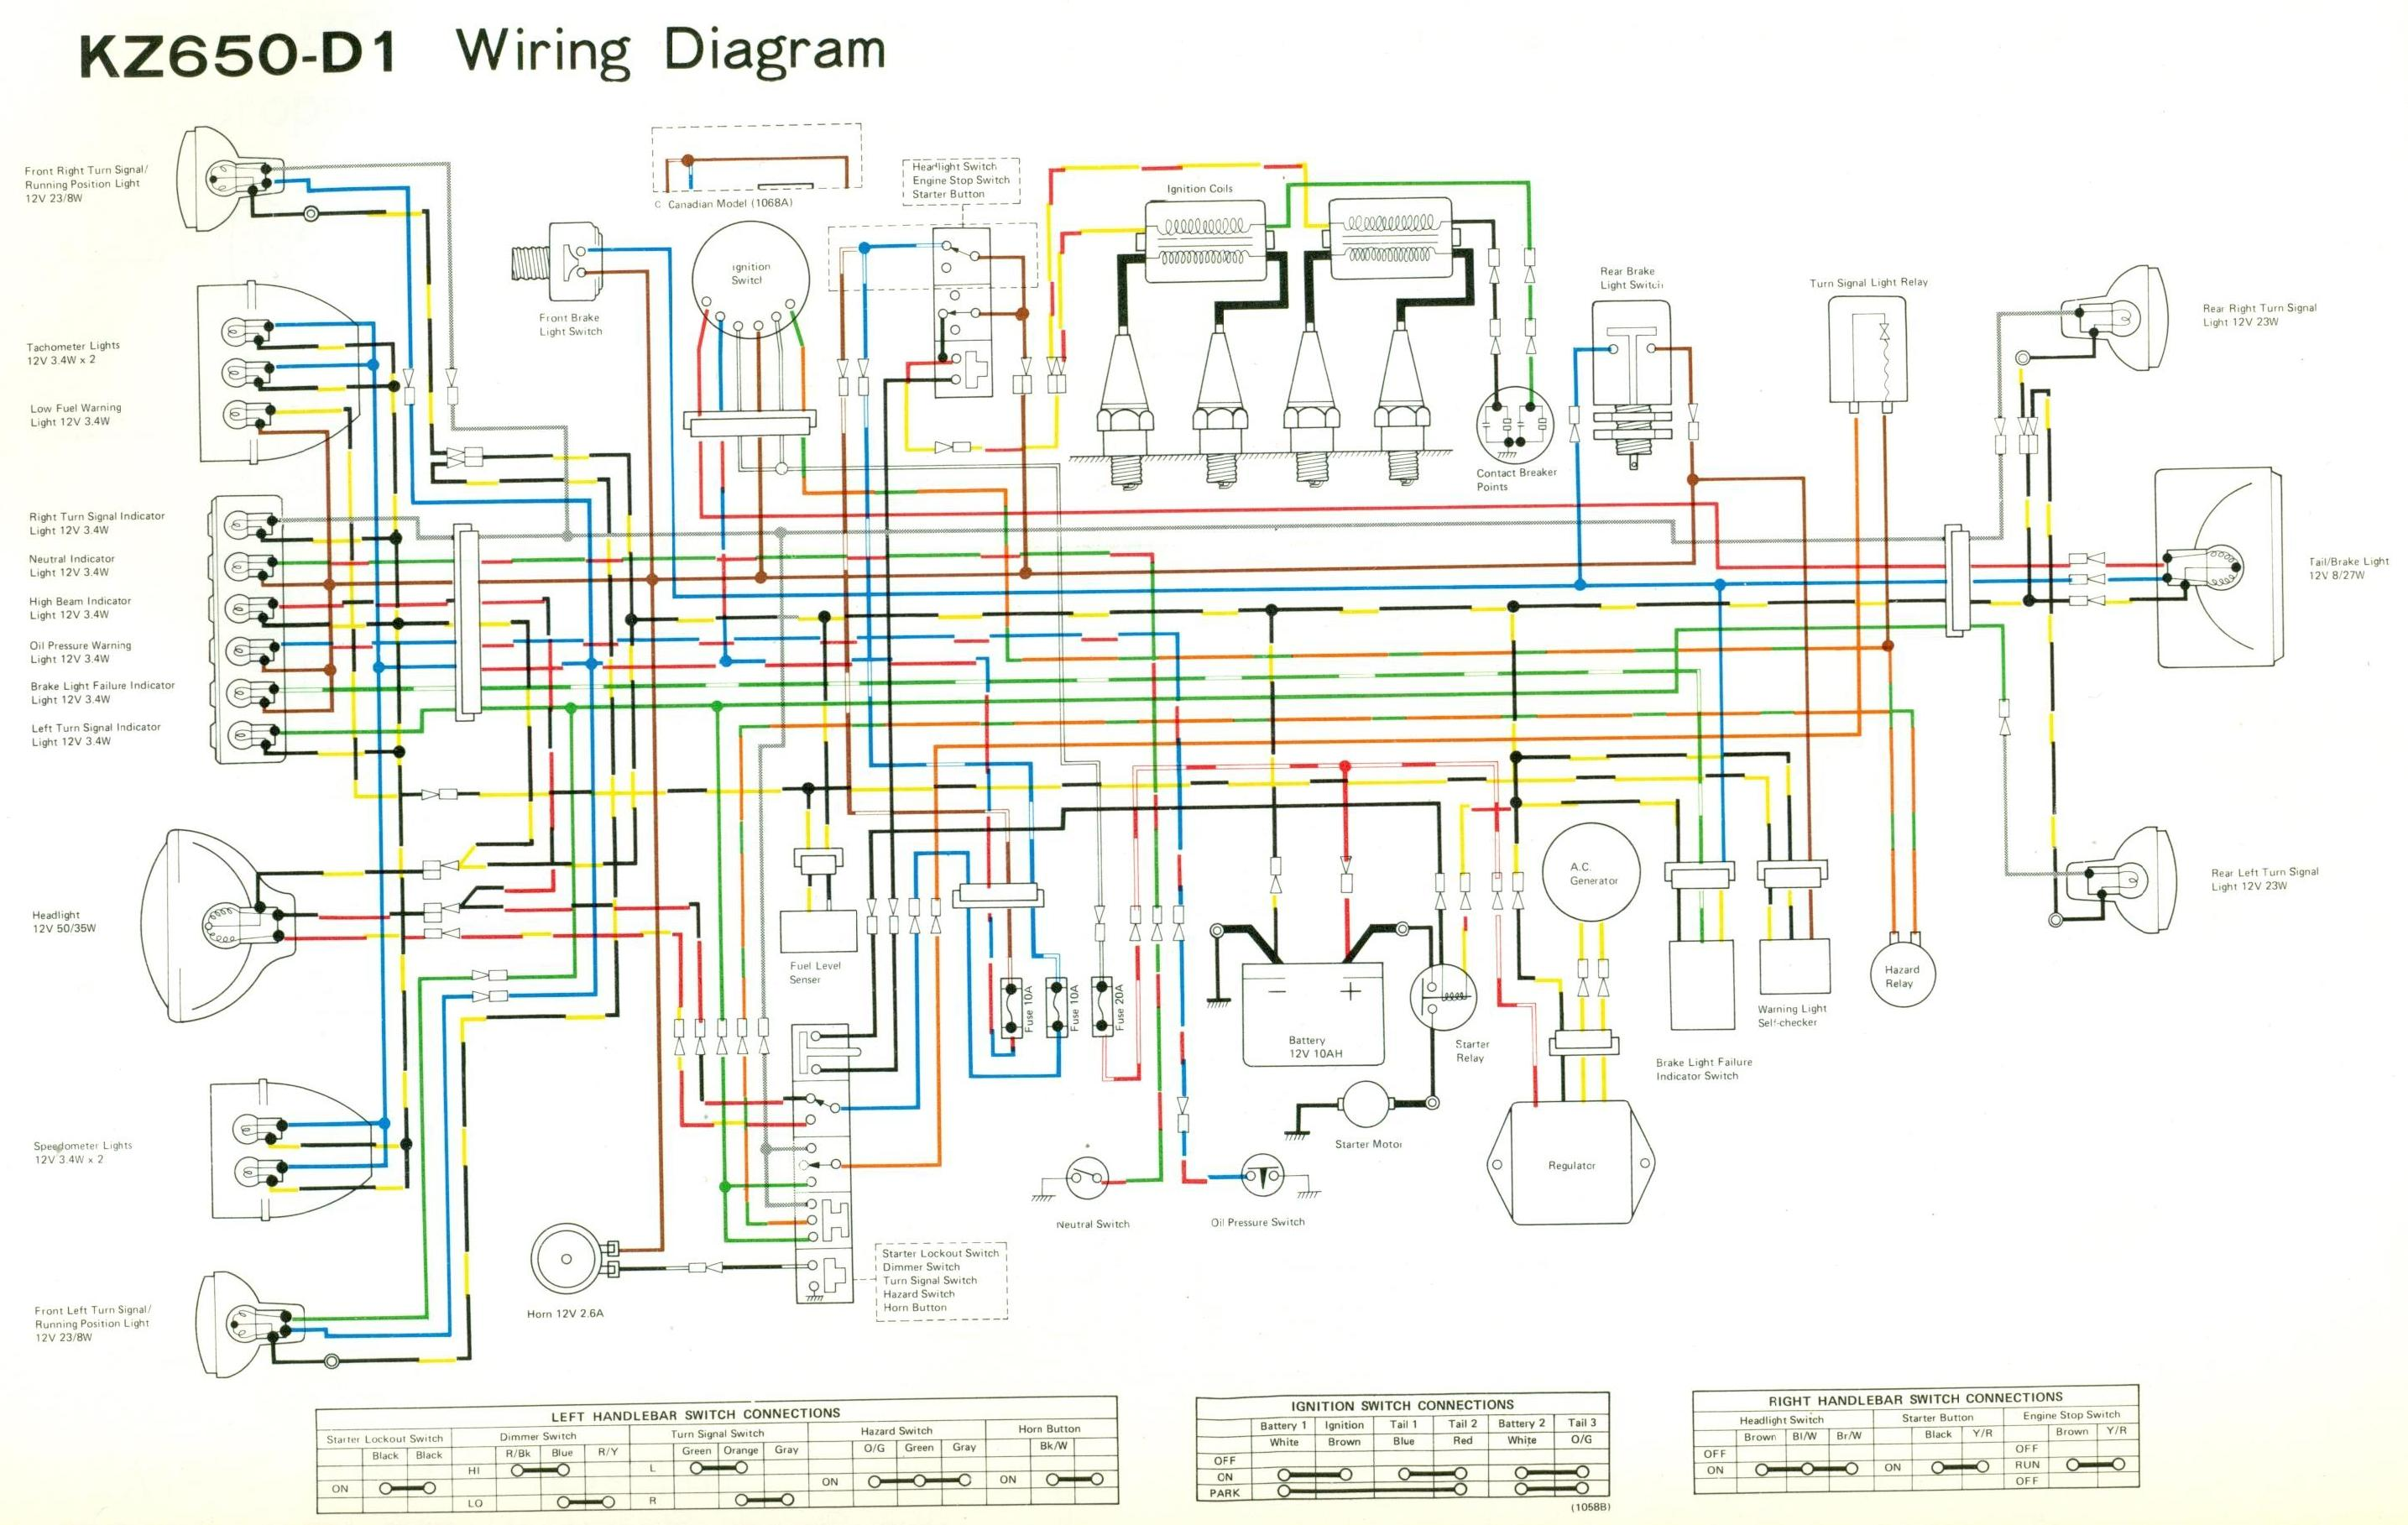 Wiring Diagrams 1984 Nissan 300zx Diagram Kz650 D